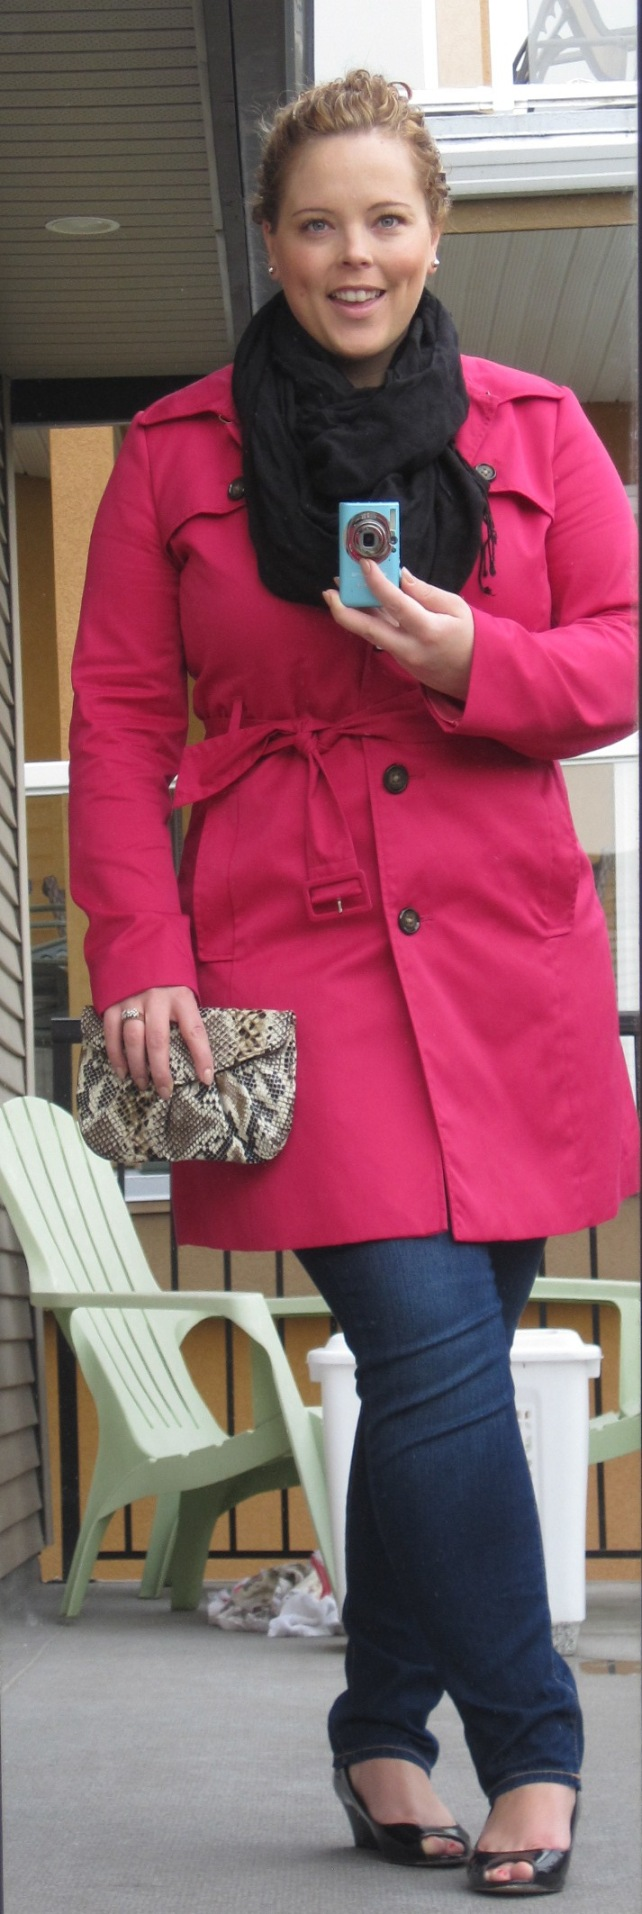 Me in a pink trench and jeans.